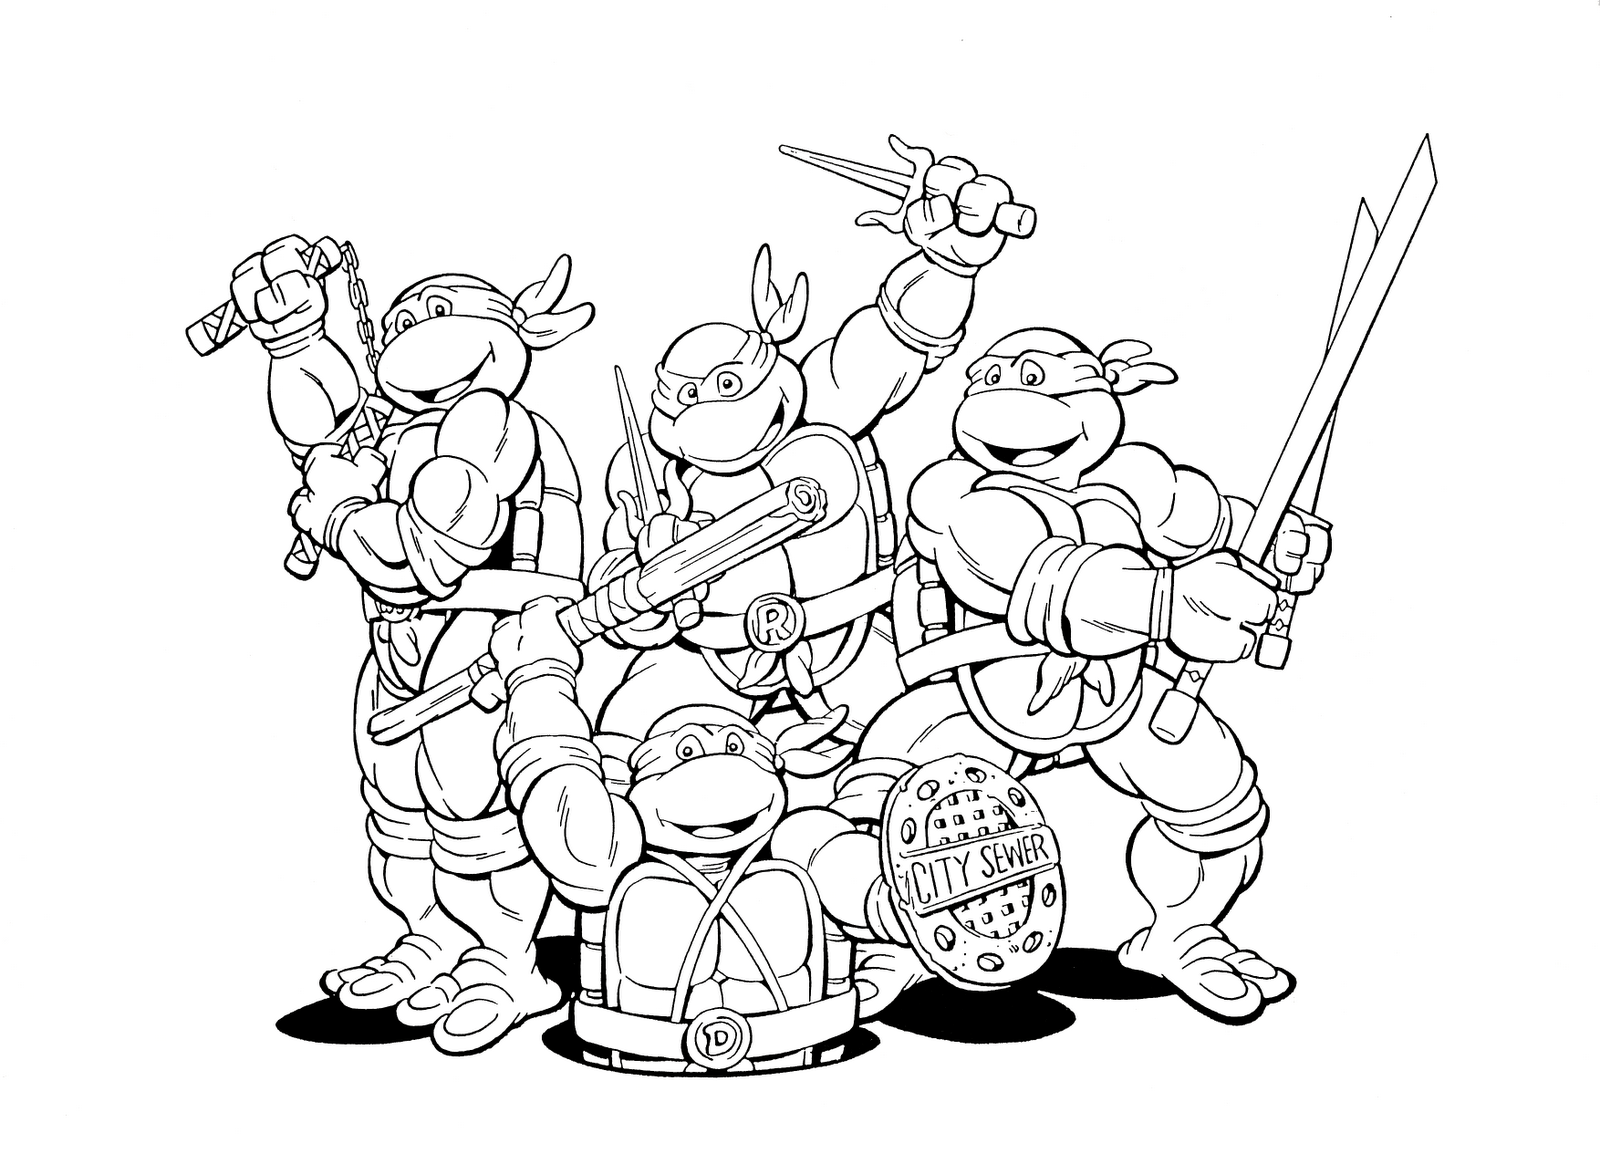 Super Heroes Coloring Kids Ninja Turtles Free Superhero Coloring Pages Kids Ninja Turtles Free